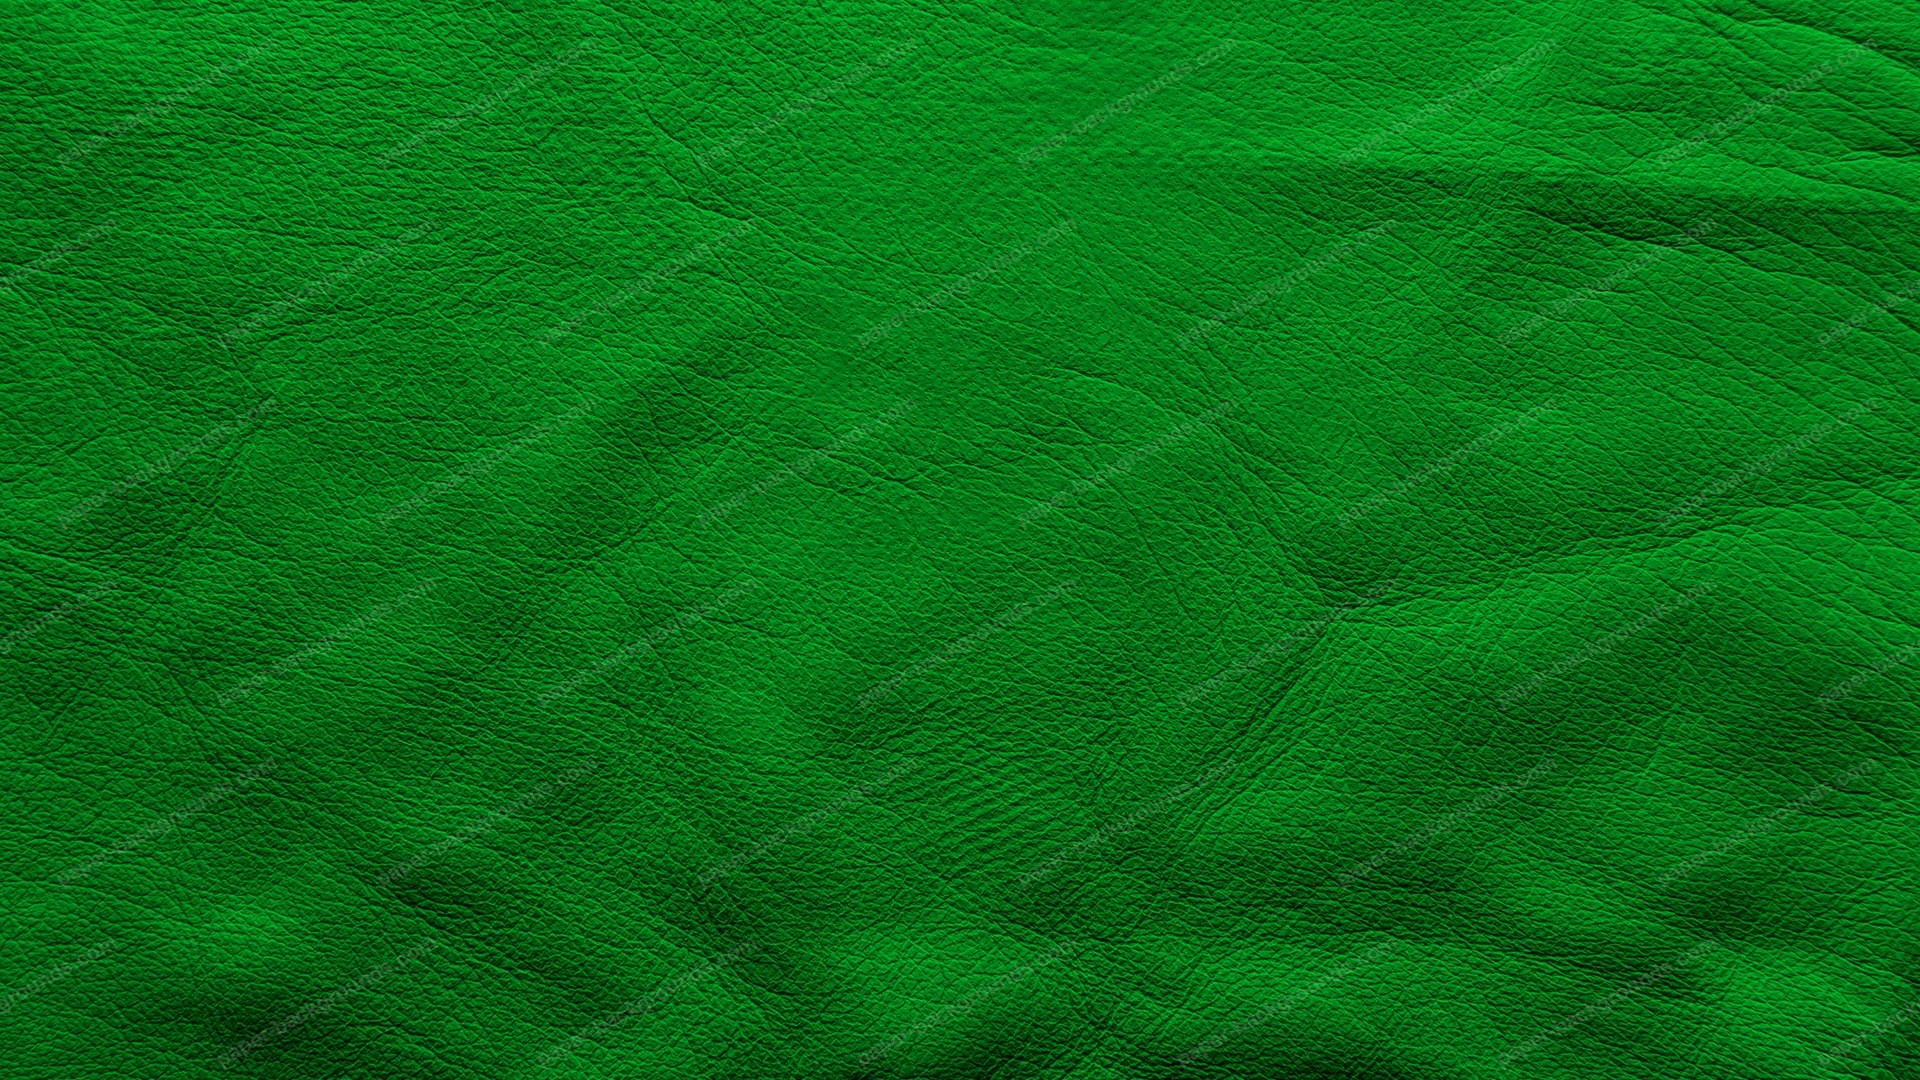 Green Abstract Wallpaper HD HD Images New Green HD Backgrounds Wallpapers)